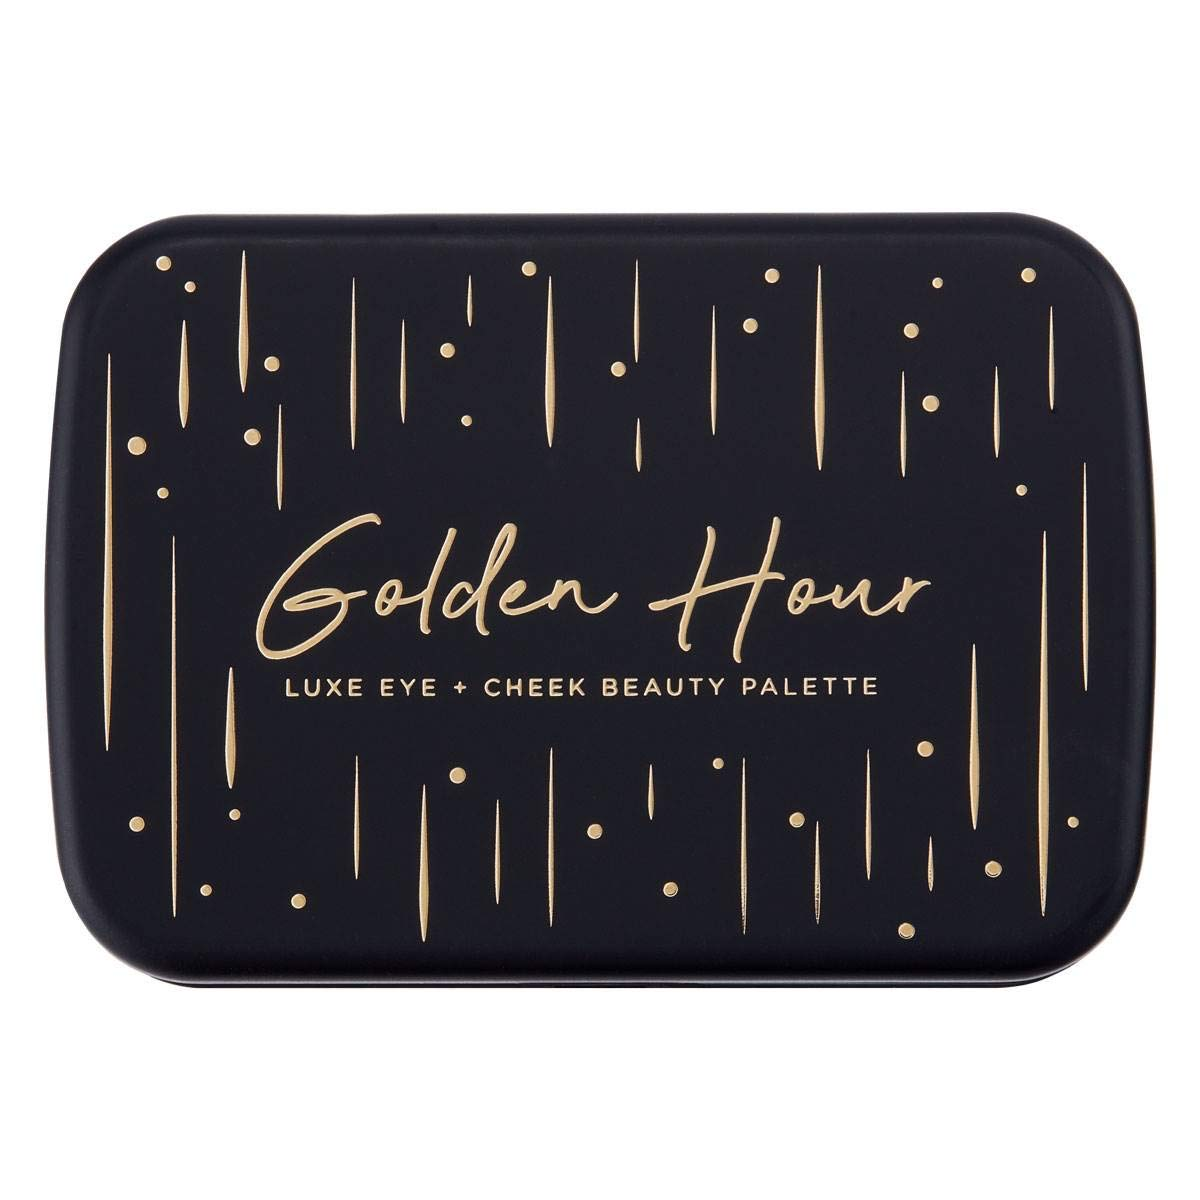 Aloette Golden Hour Luxe Eye and Beauty Cheek Surprise price Palette Max 62% OFF